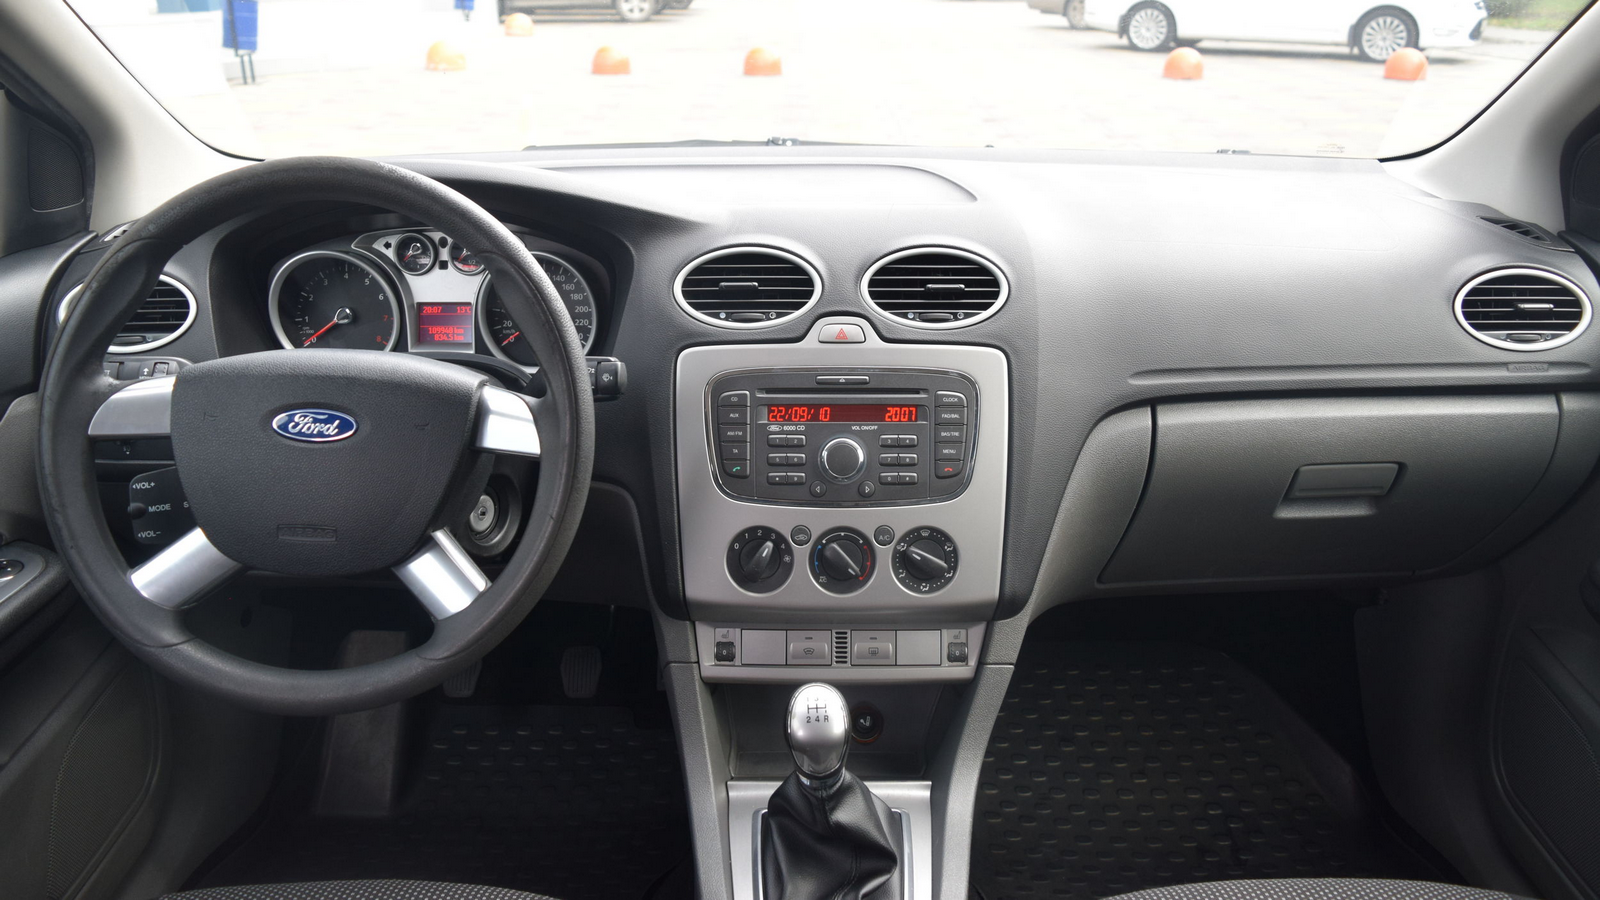 Ford Focus ll салон